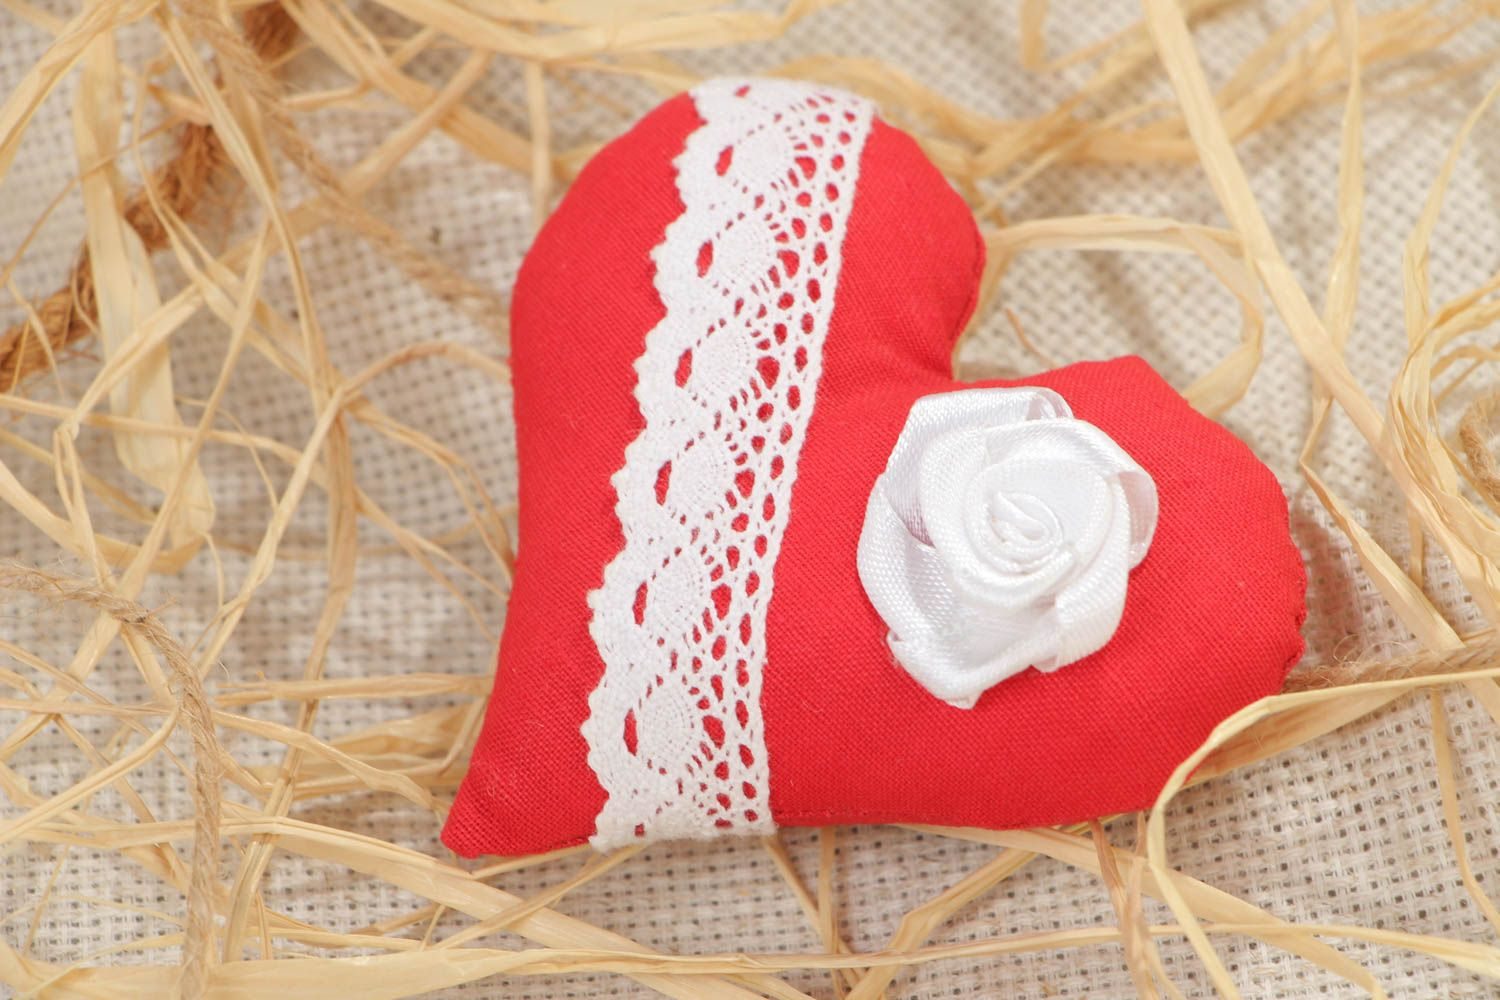 Handmade decorative fridge magnet with soft red cotton fabric heart with lace photo 1